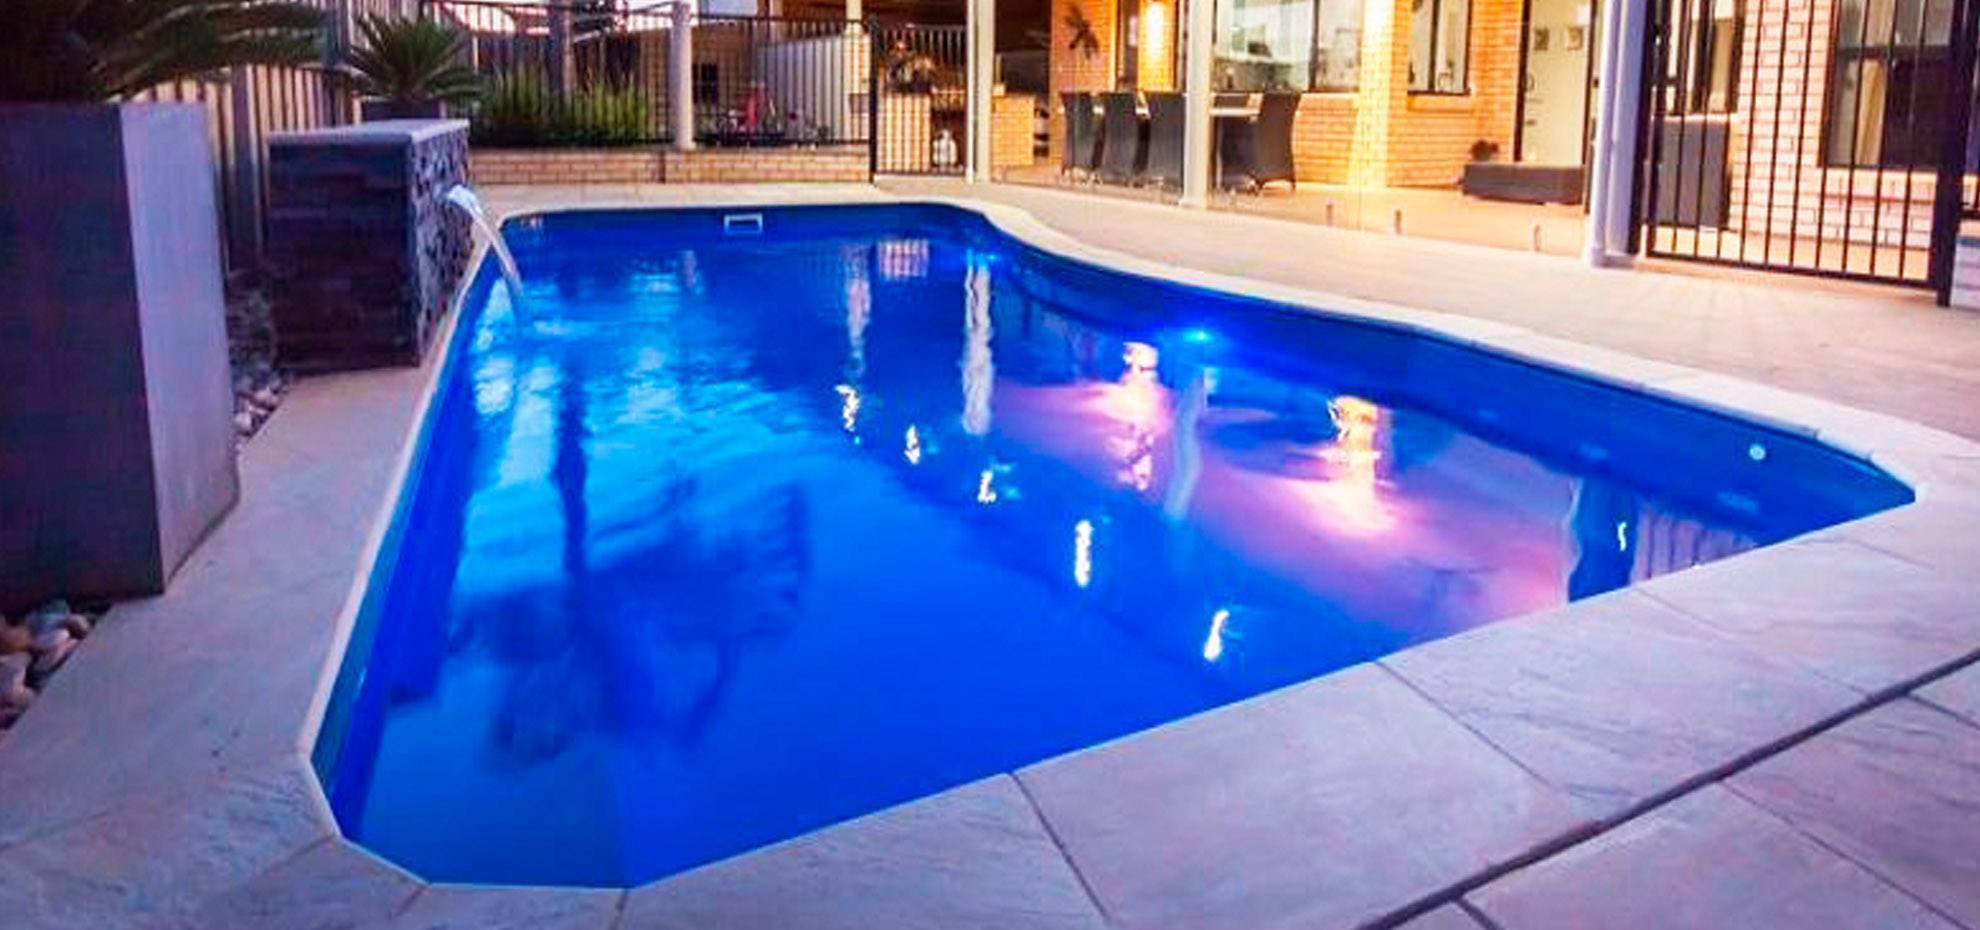 Moroccan Fibreglass Pool design with stone water feature and coping by Leisure Pools